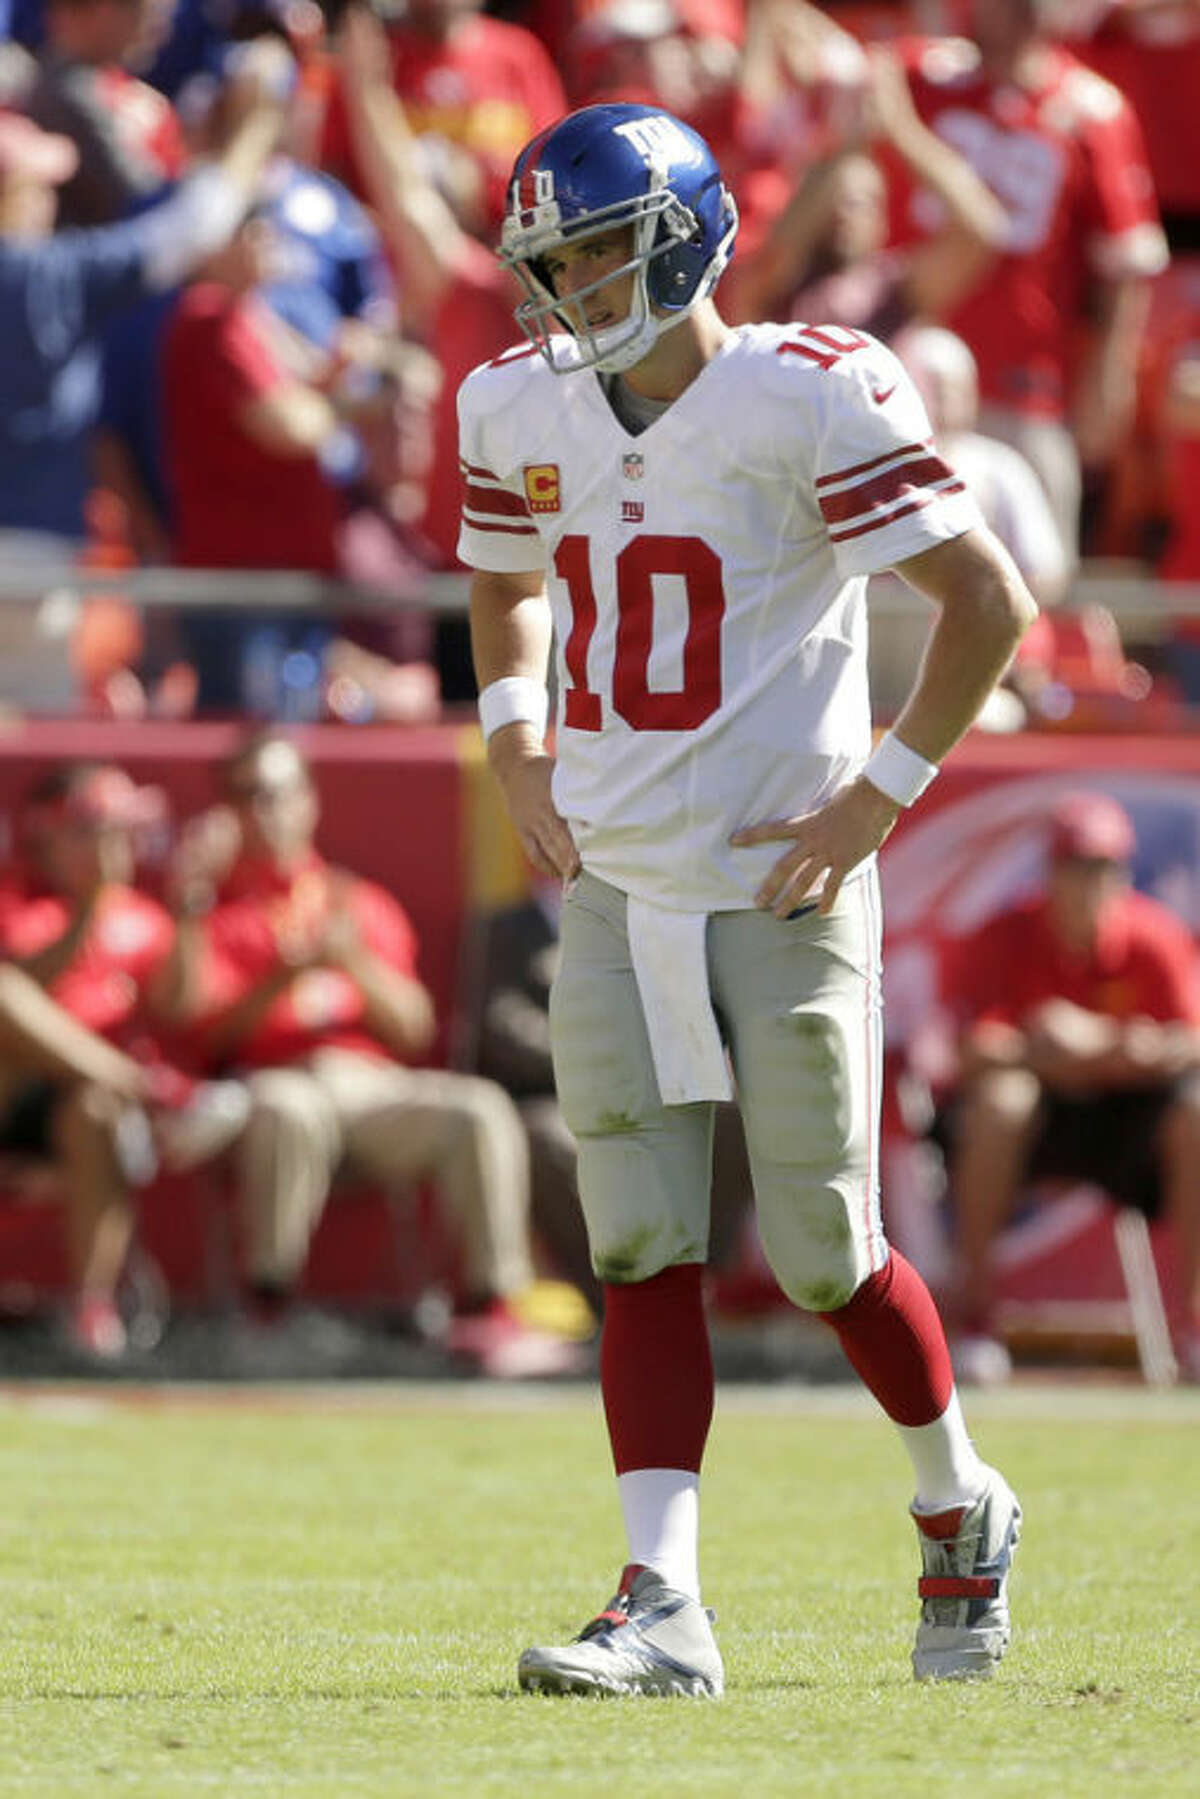 New York Giants quarterback Eli Manning (10) walks off the field after a turnover during the second half of an NFL football game against the Kansas City Chiefs at Arrowhead Stadium in Kansas City, Mo., Sunday, Sept. 29, 2013. The Chiefs defeated the Giants 31-7. (AP Photo/Charlie Riedel)